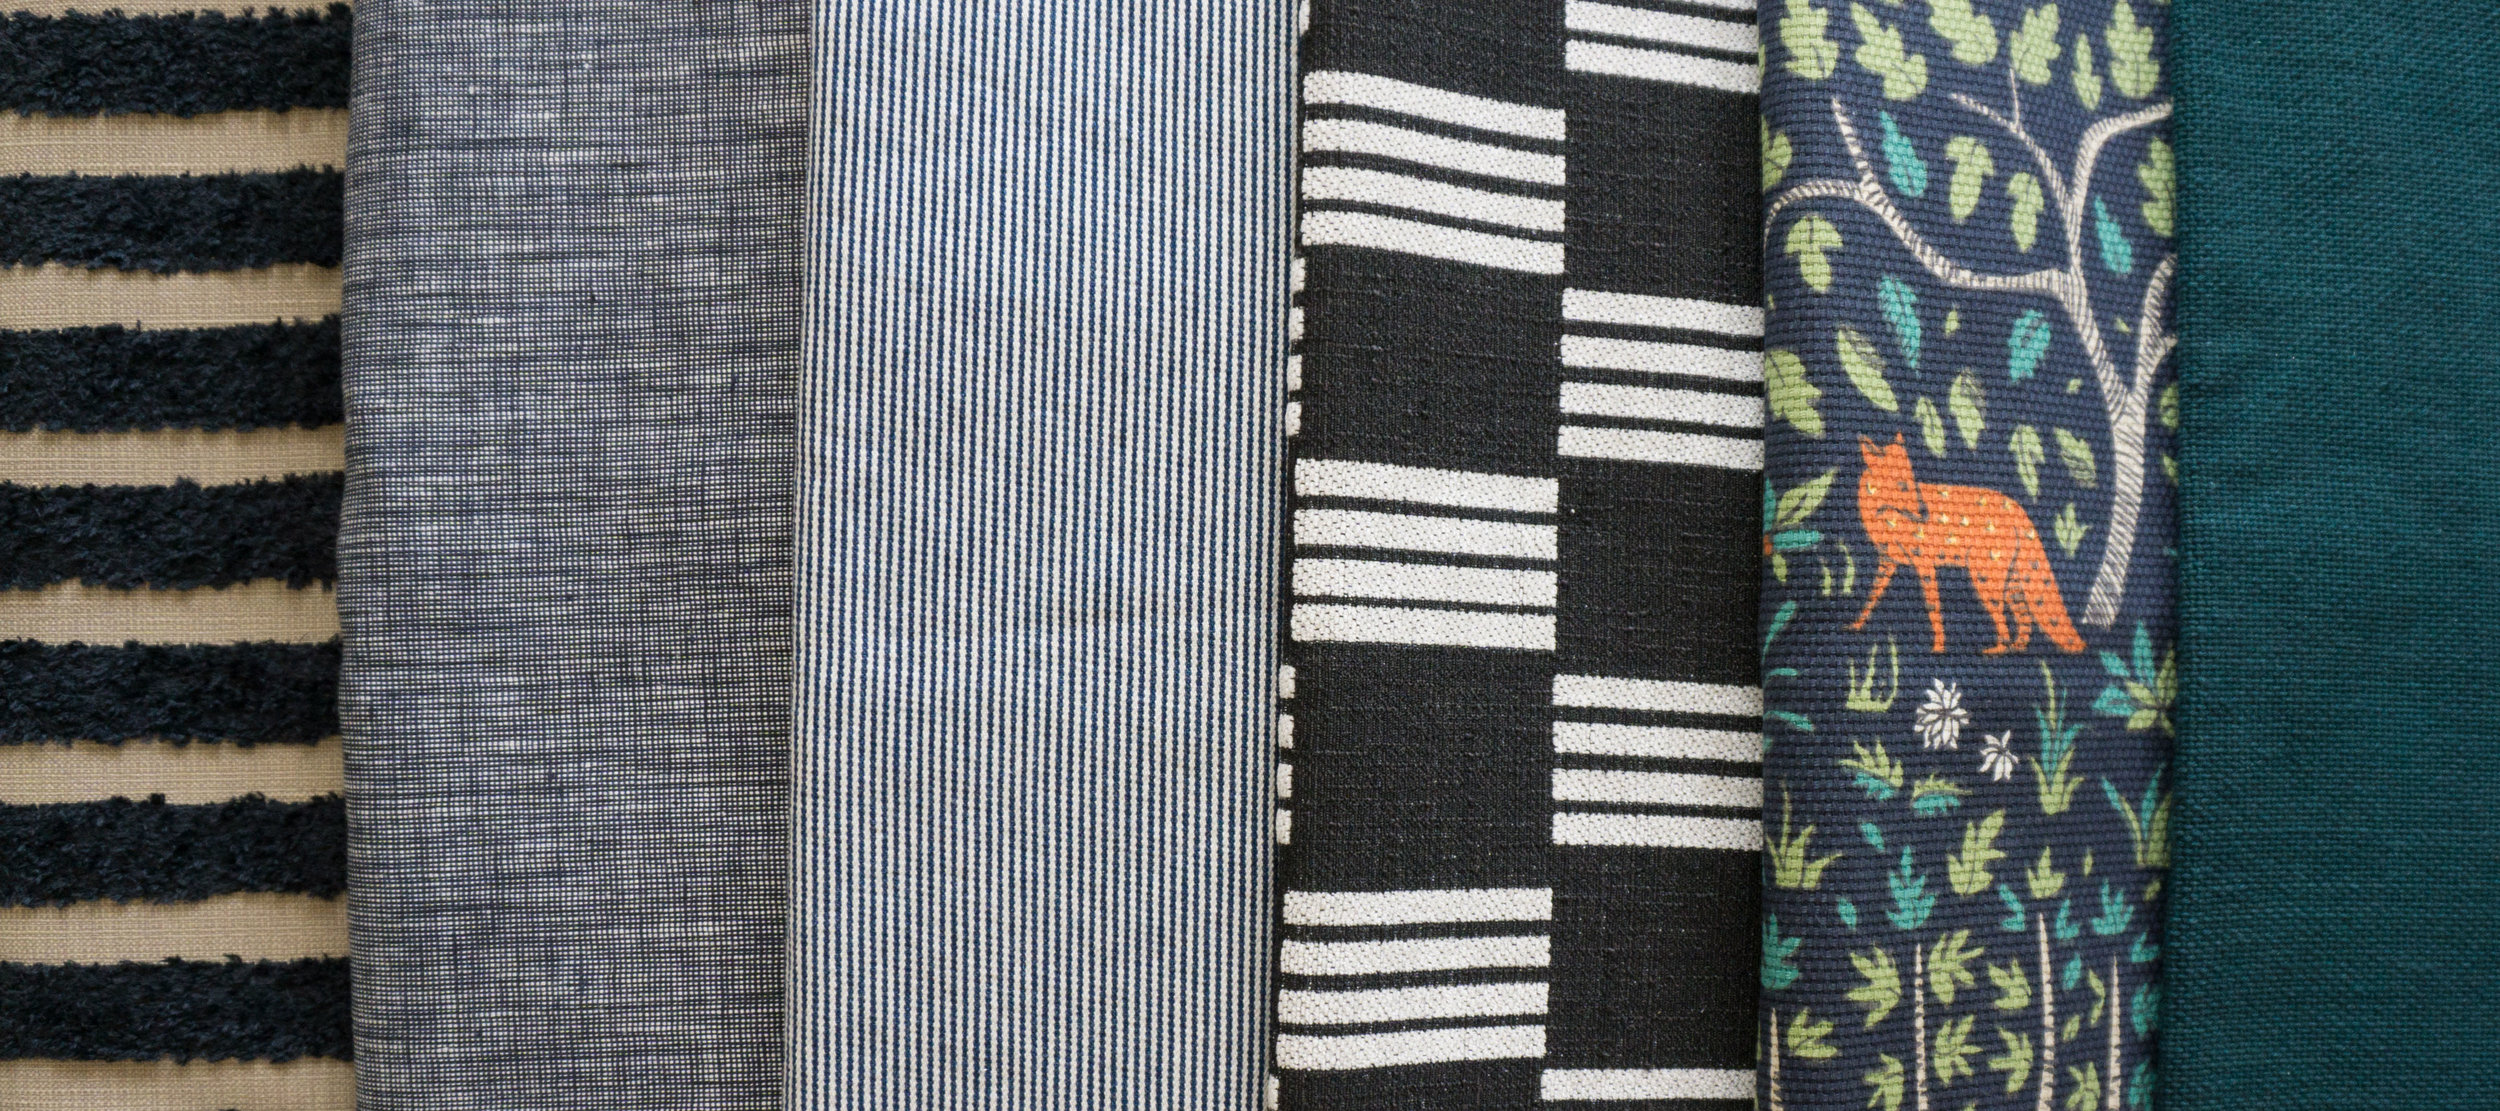 Hard to tell the content of each fabric huh? From left to right: 100% polyester fuzz stripe, 100% linen, 100% cotton stripe denim, 100% polyester brocade, 100% cotton fox print, ramie/linen solid weave.